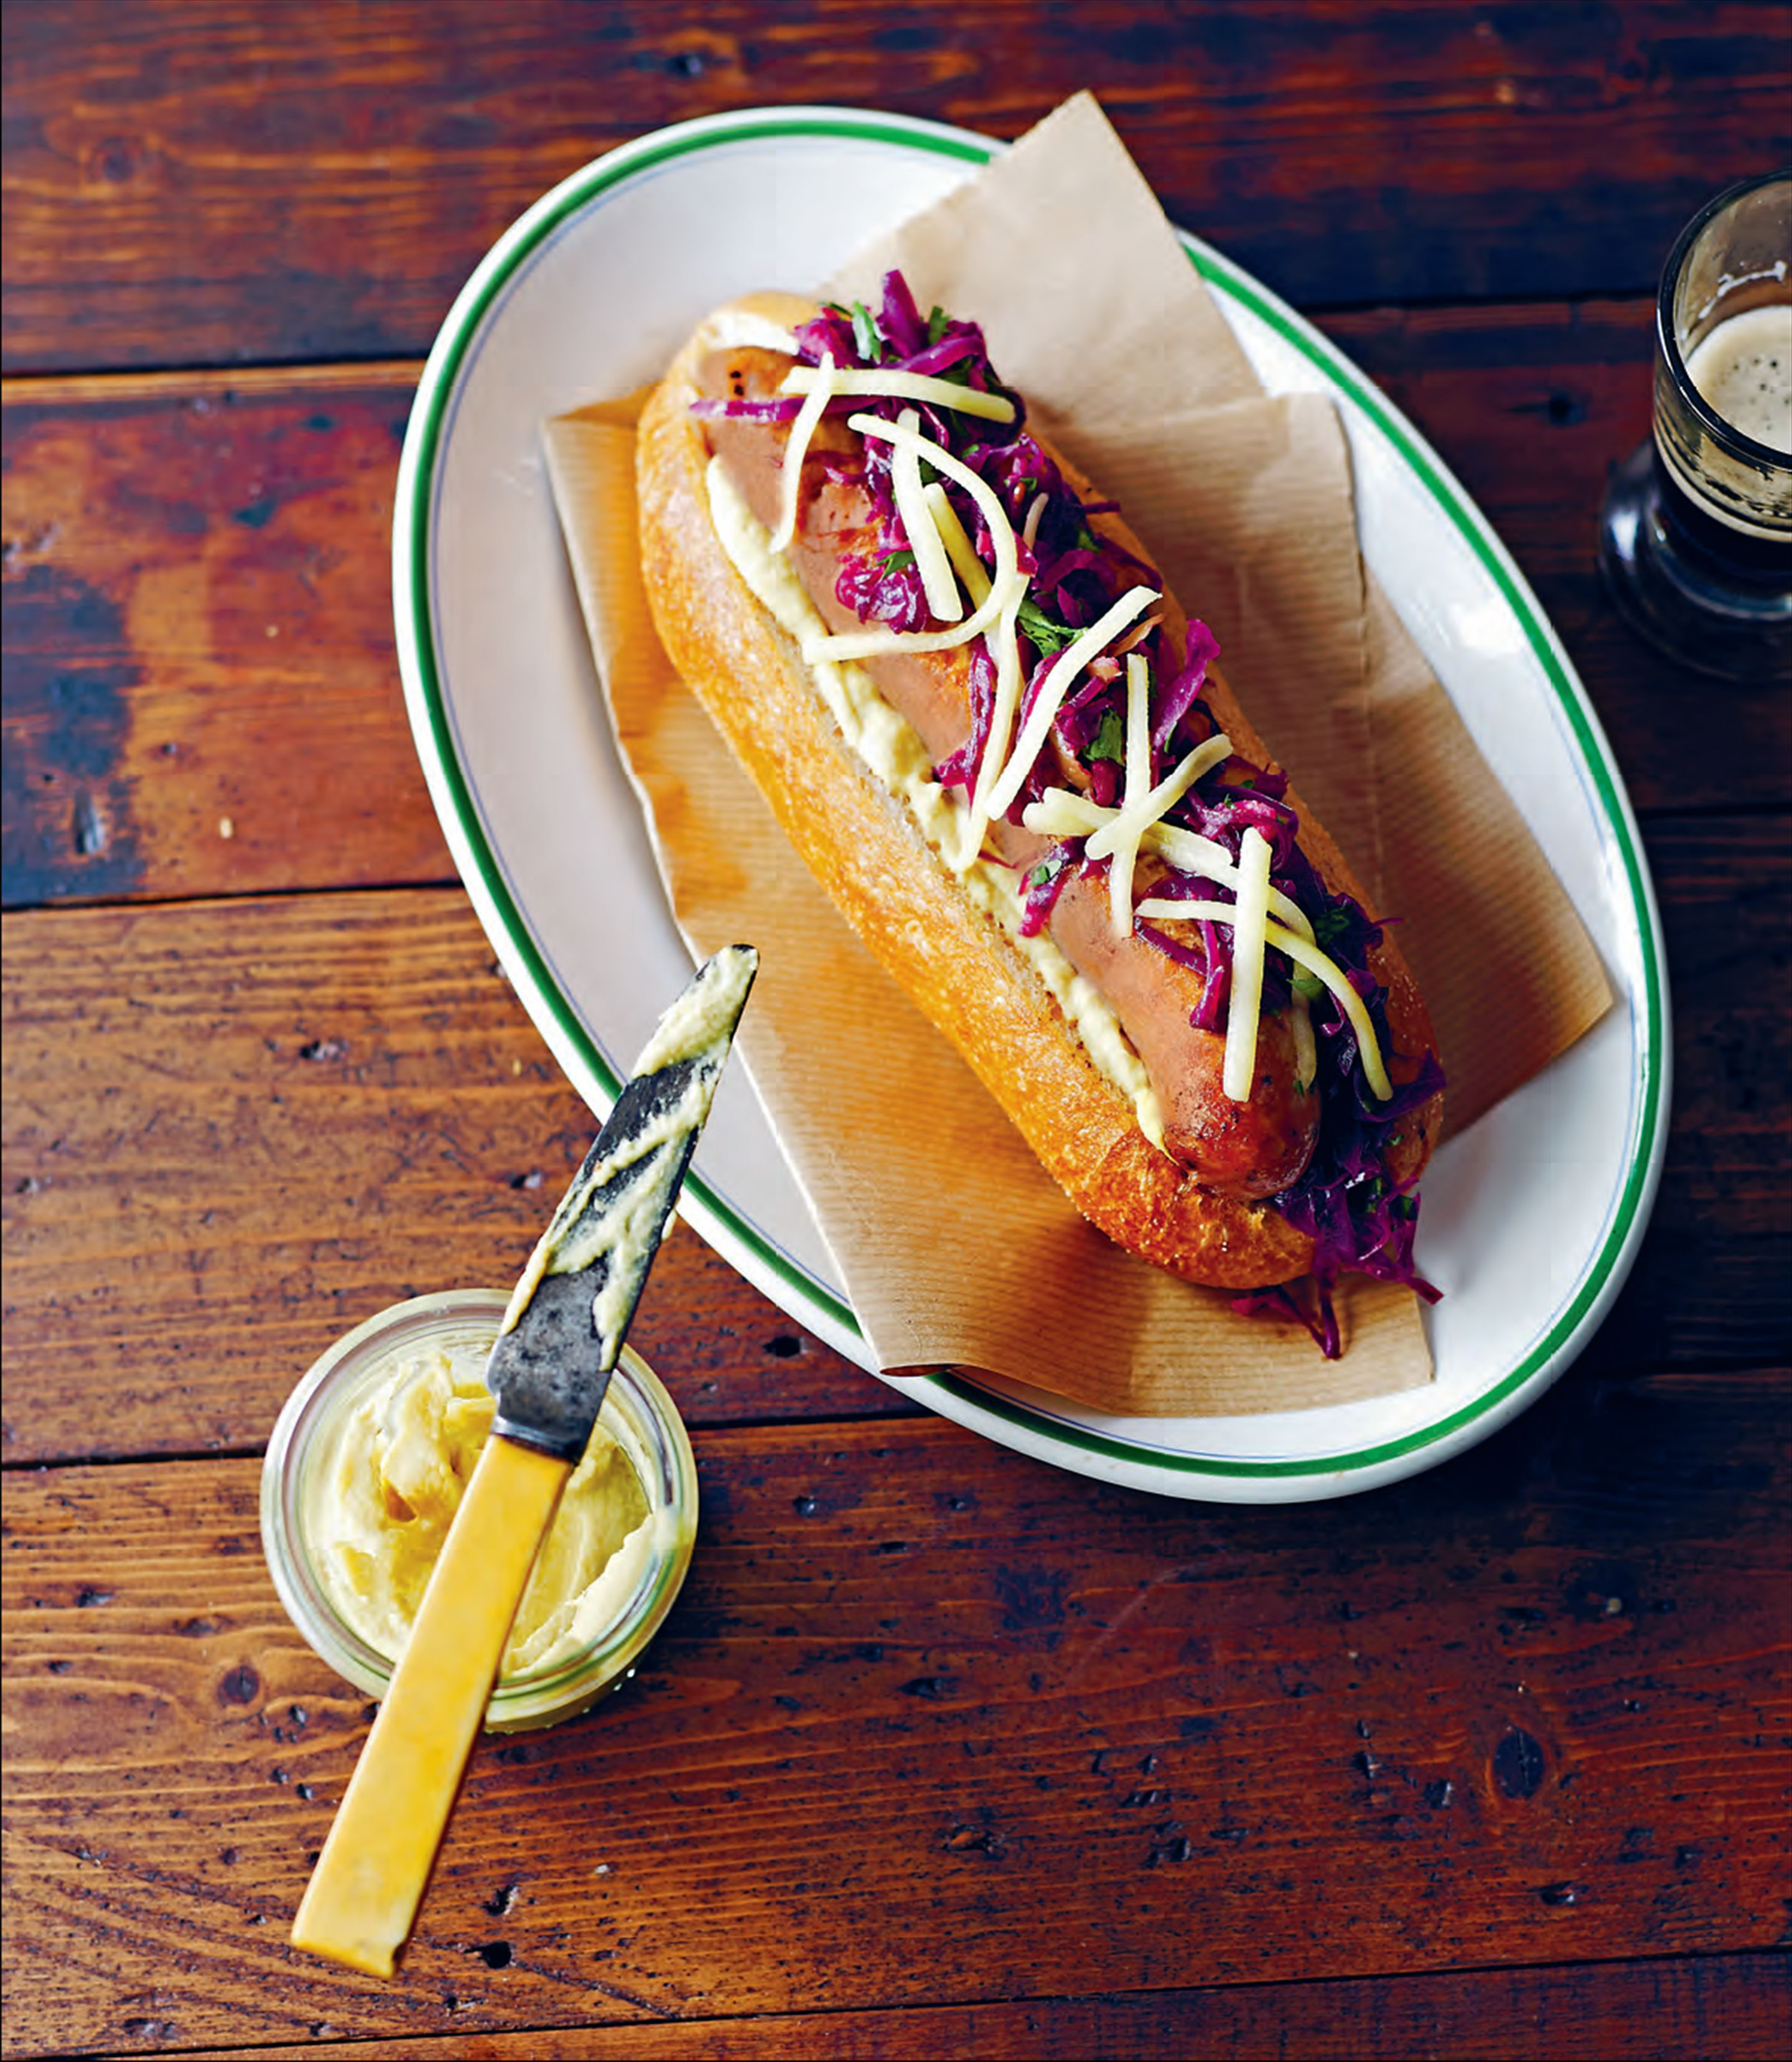 Gourmet hotdogs with braised red cabbage and apple